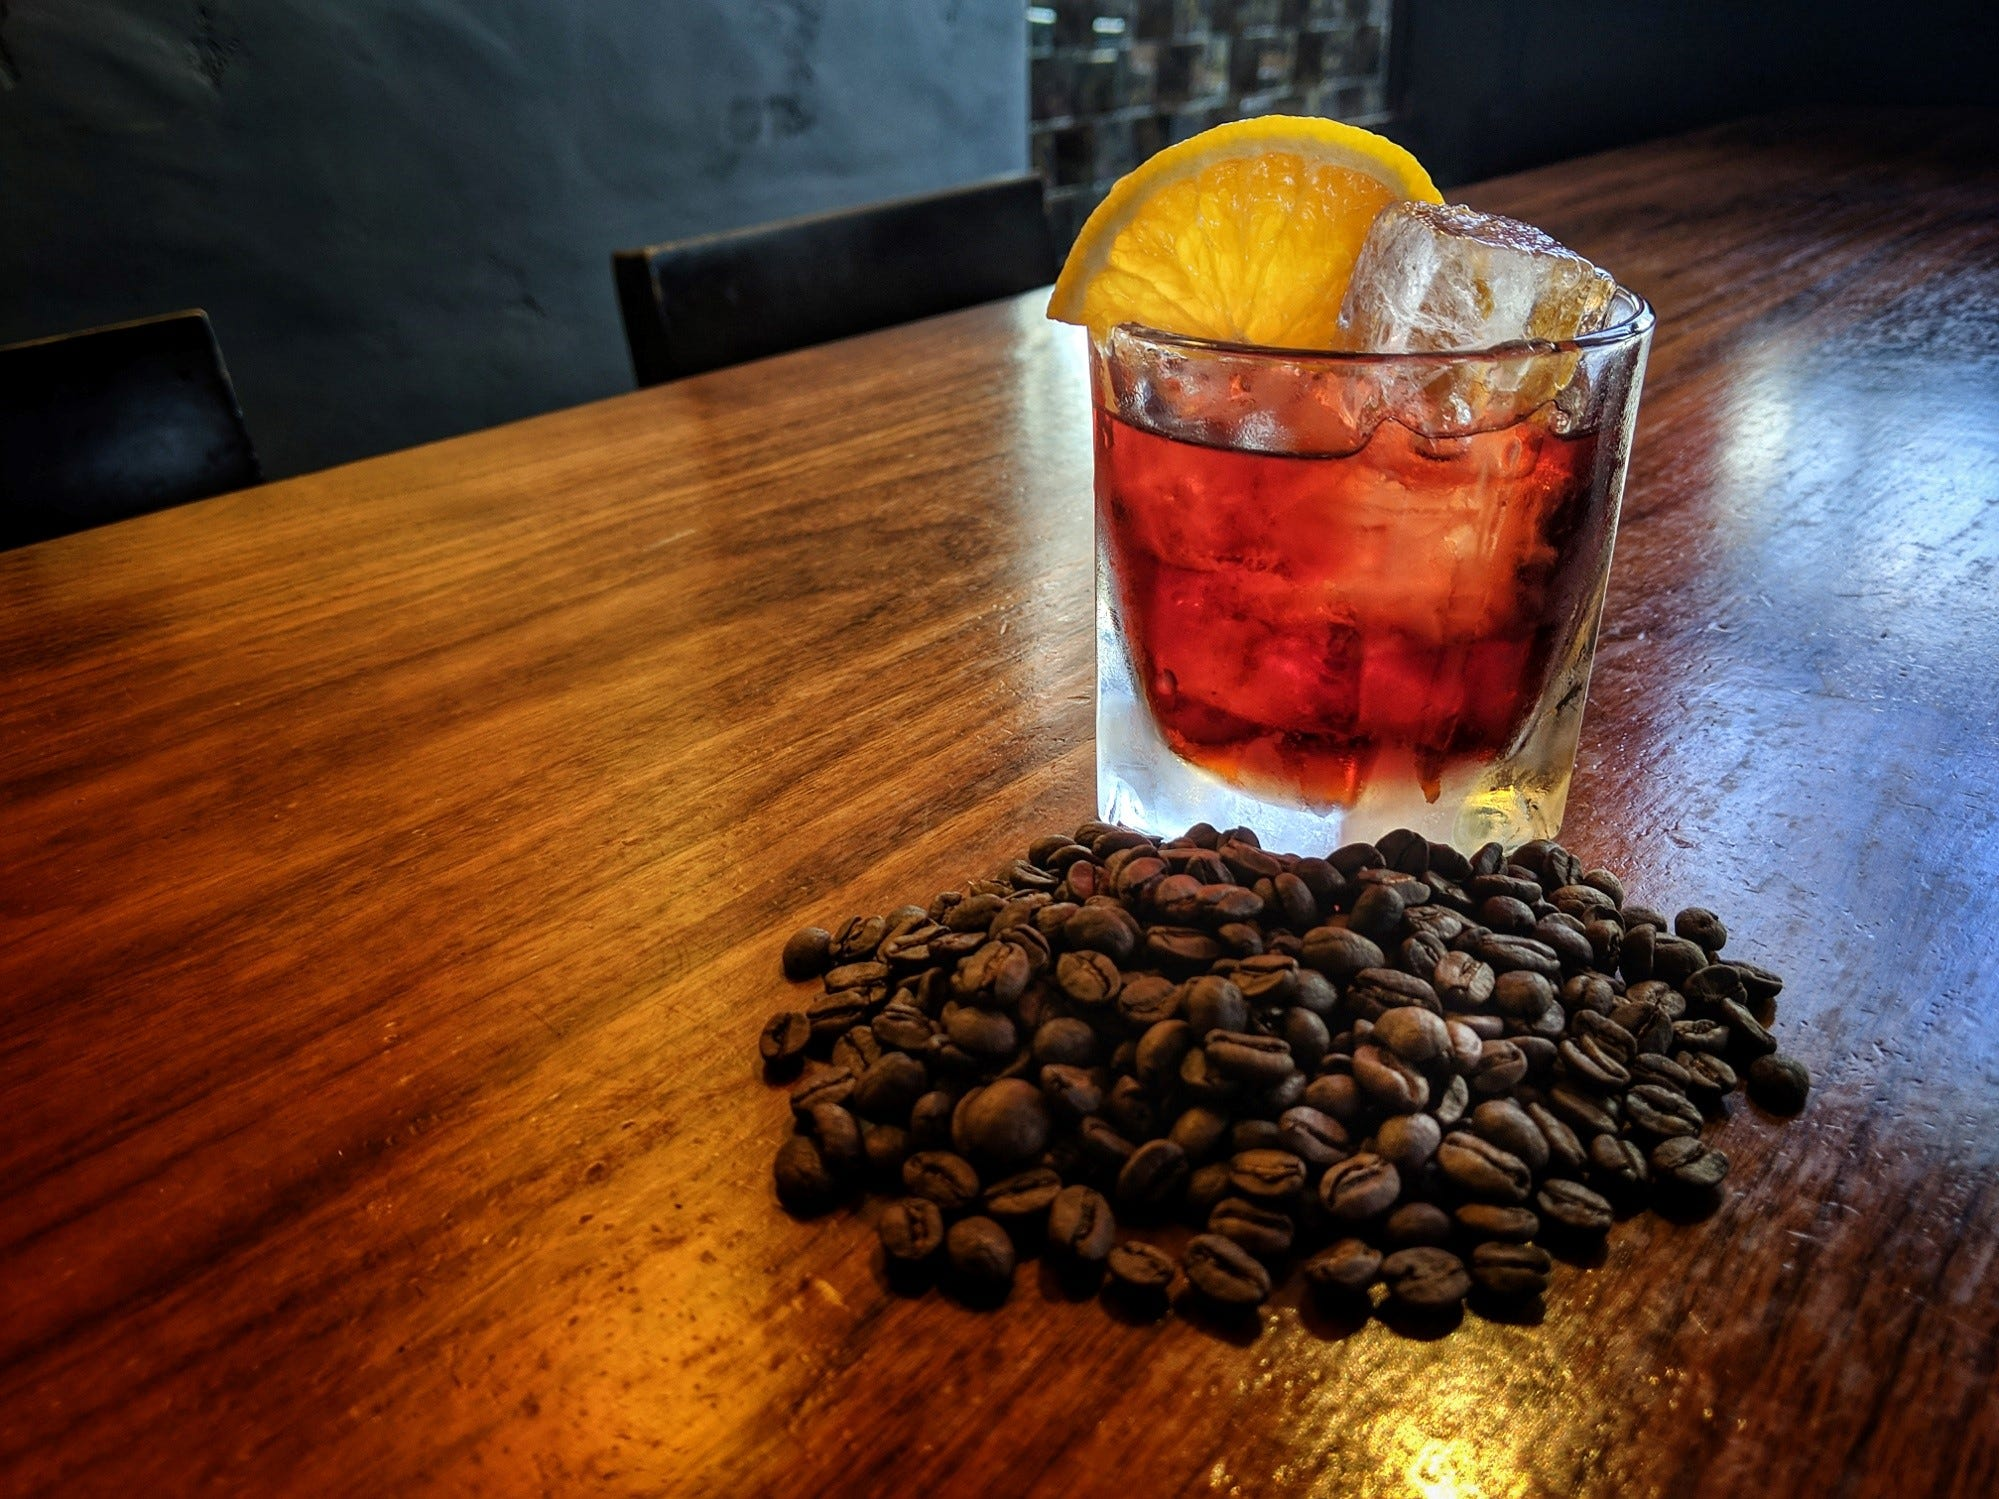 The classic negroni is a specialty at Bitter & Twisted Cocktail Parlour in downtown Phoenix. For fall, the cocktail gets a warm, buzzy twist with an infusion of freshly roasted coffee beans.